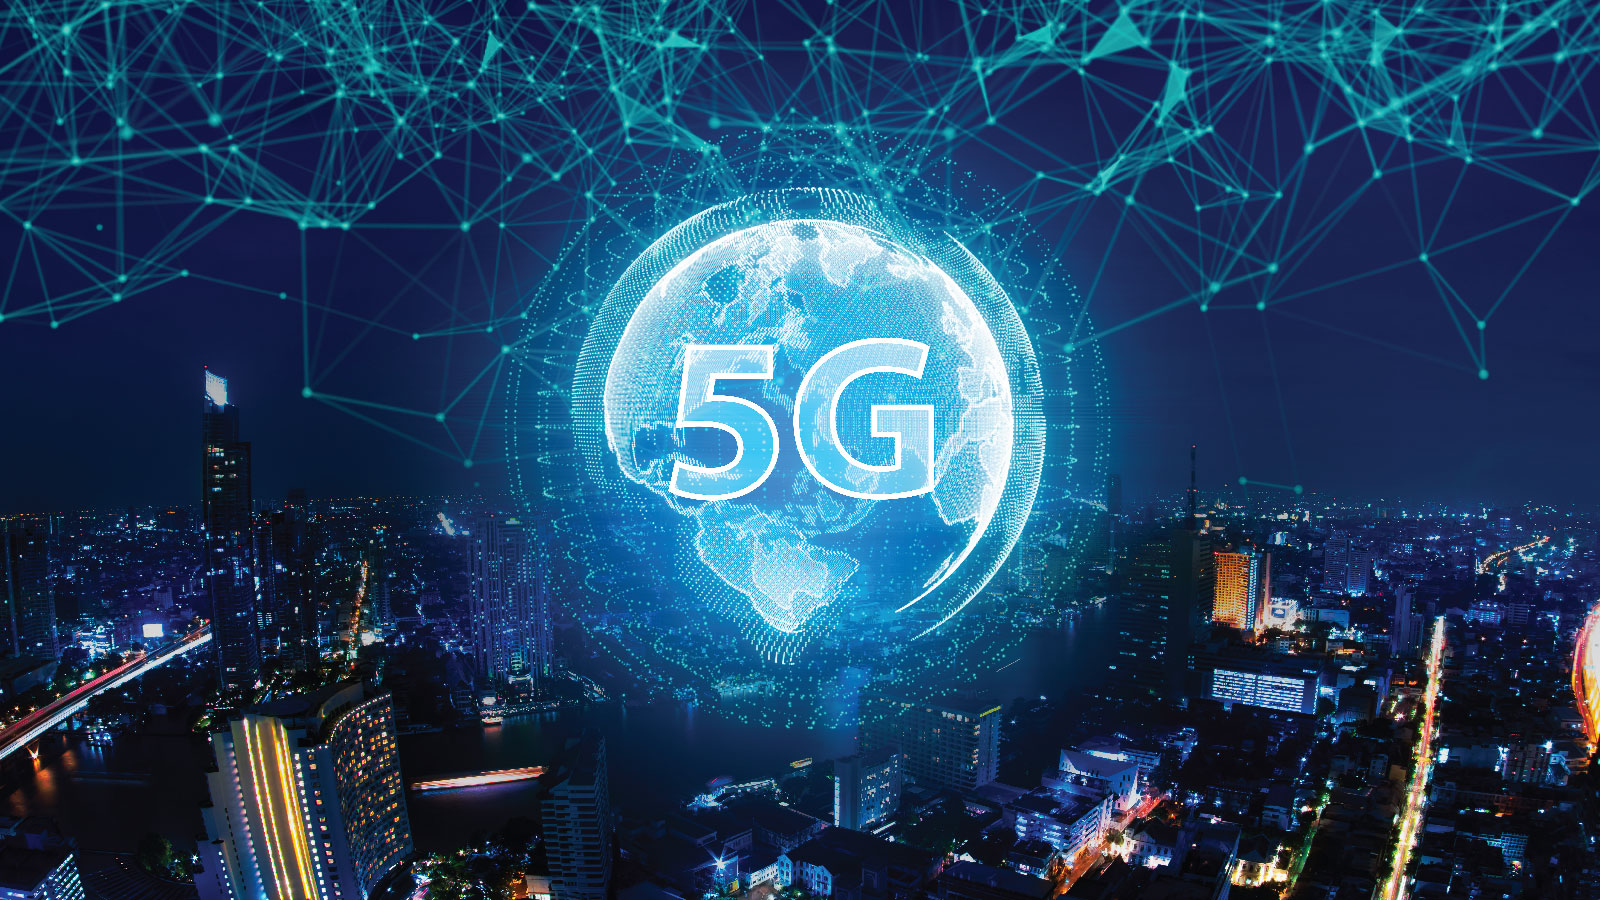 5G is Driving Digital Transformation in the Enterprise space